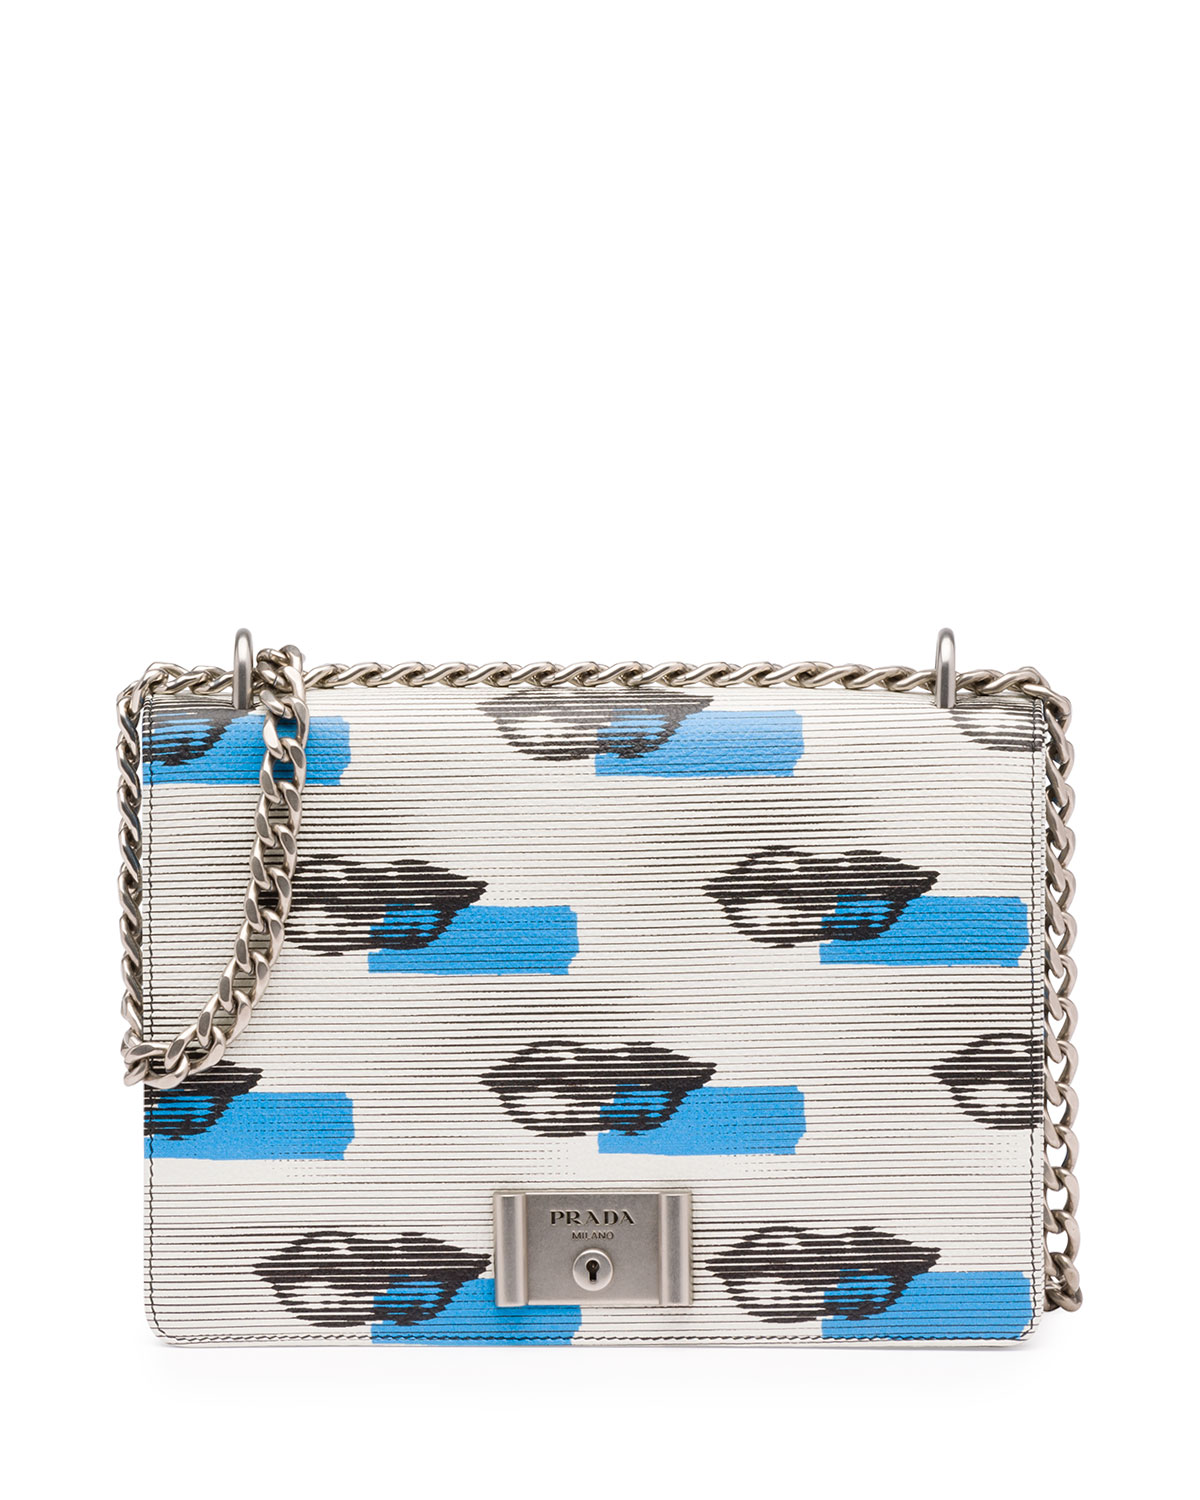 Prada Resort 2016 Bag Collection Featuring Perforated Handbags ...